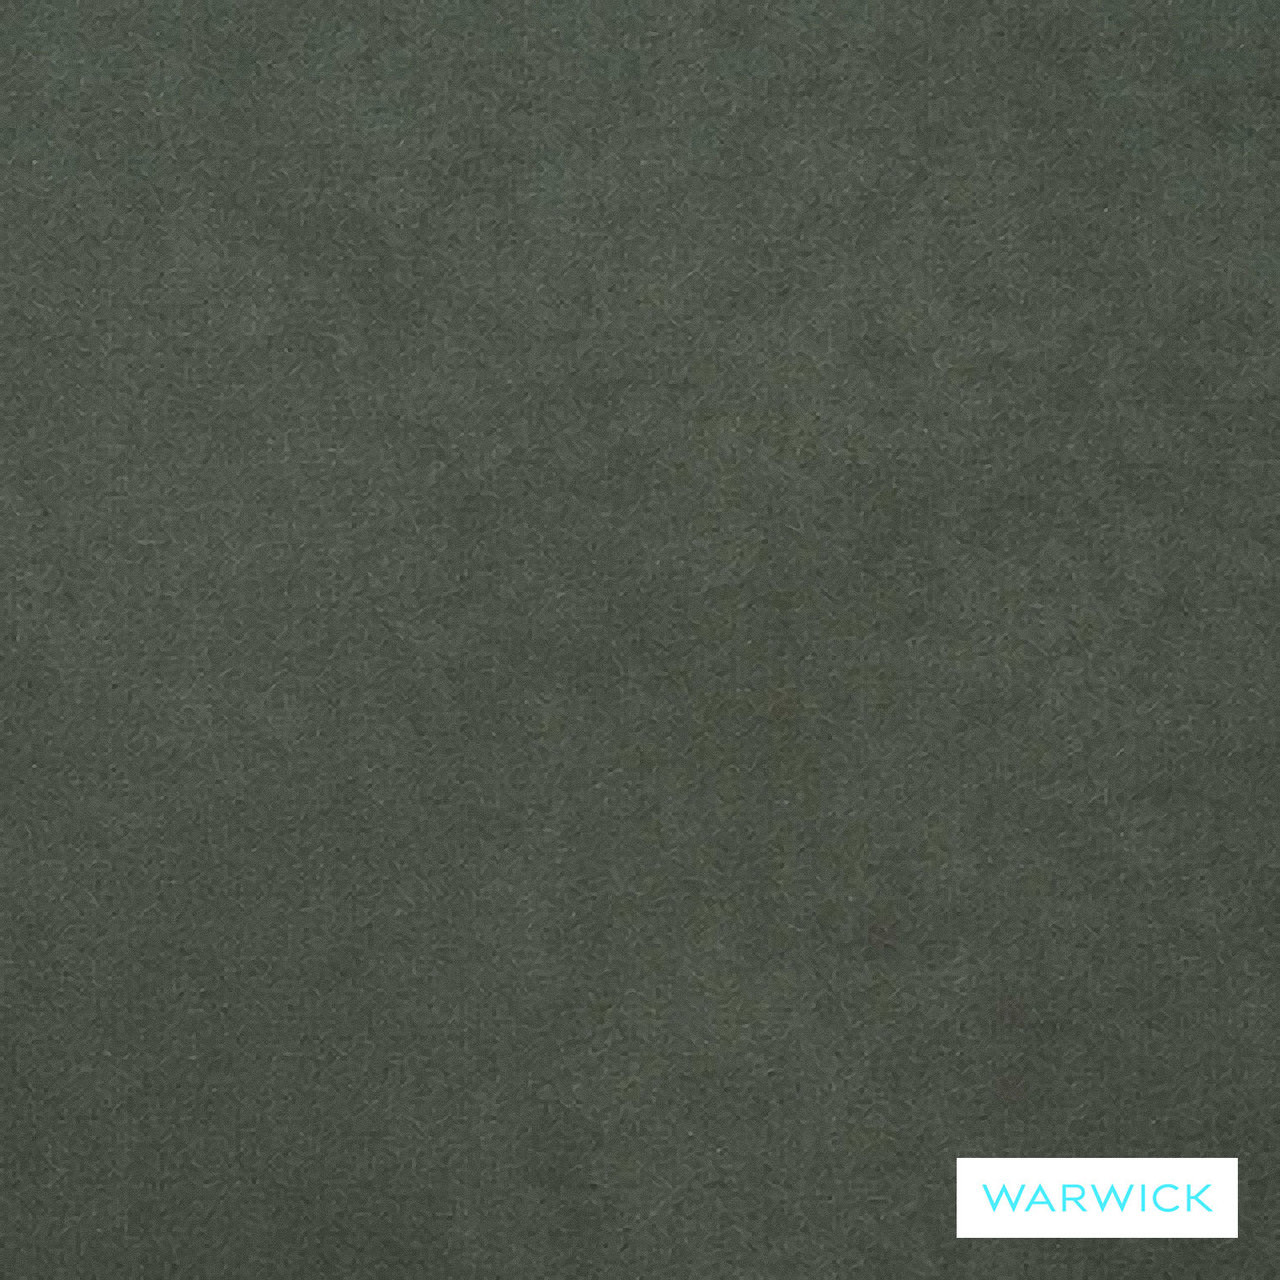 Hunter' | Upholstery Fabric - Green, Plain, HealthGuard, Synthetic fibre, Washable, Commercial Use, Halo